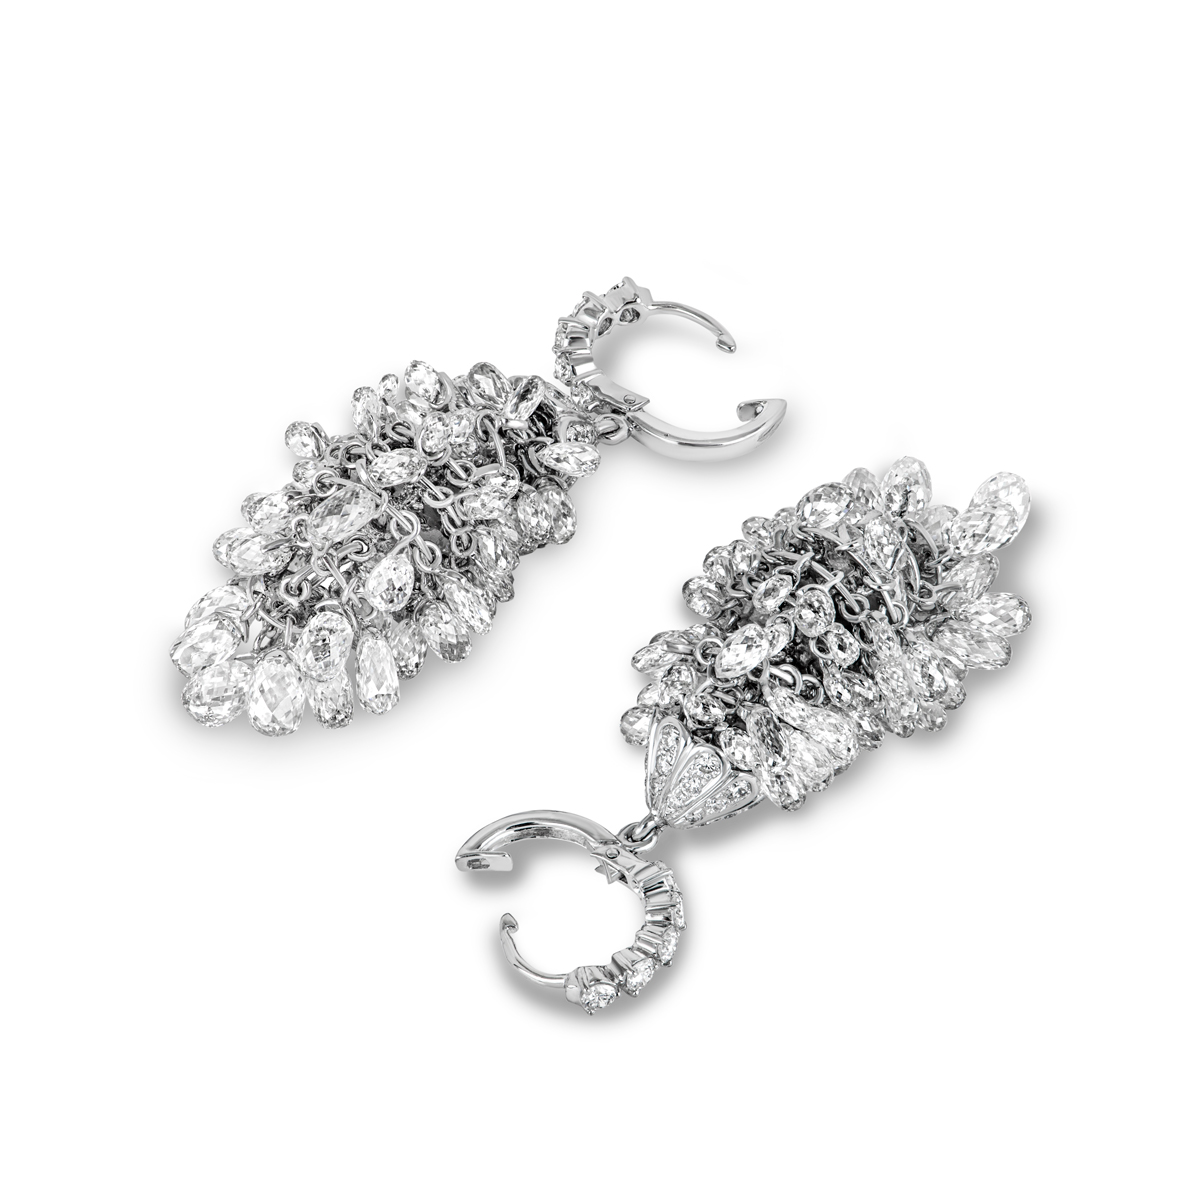 White Gold Briolette Diamonds Chandelier Earrings 34.78ct TDW